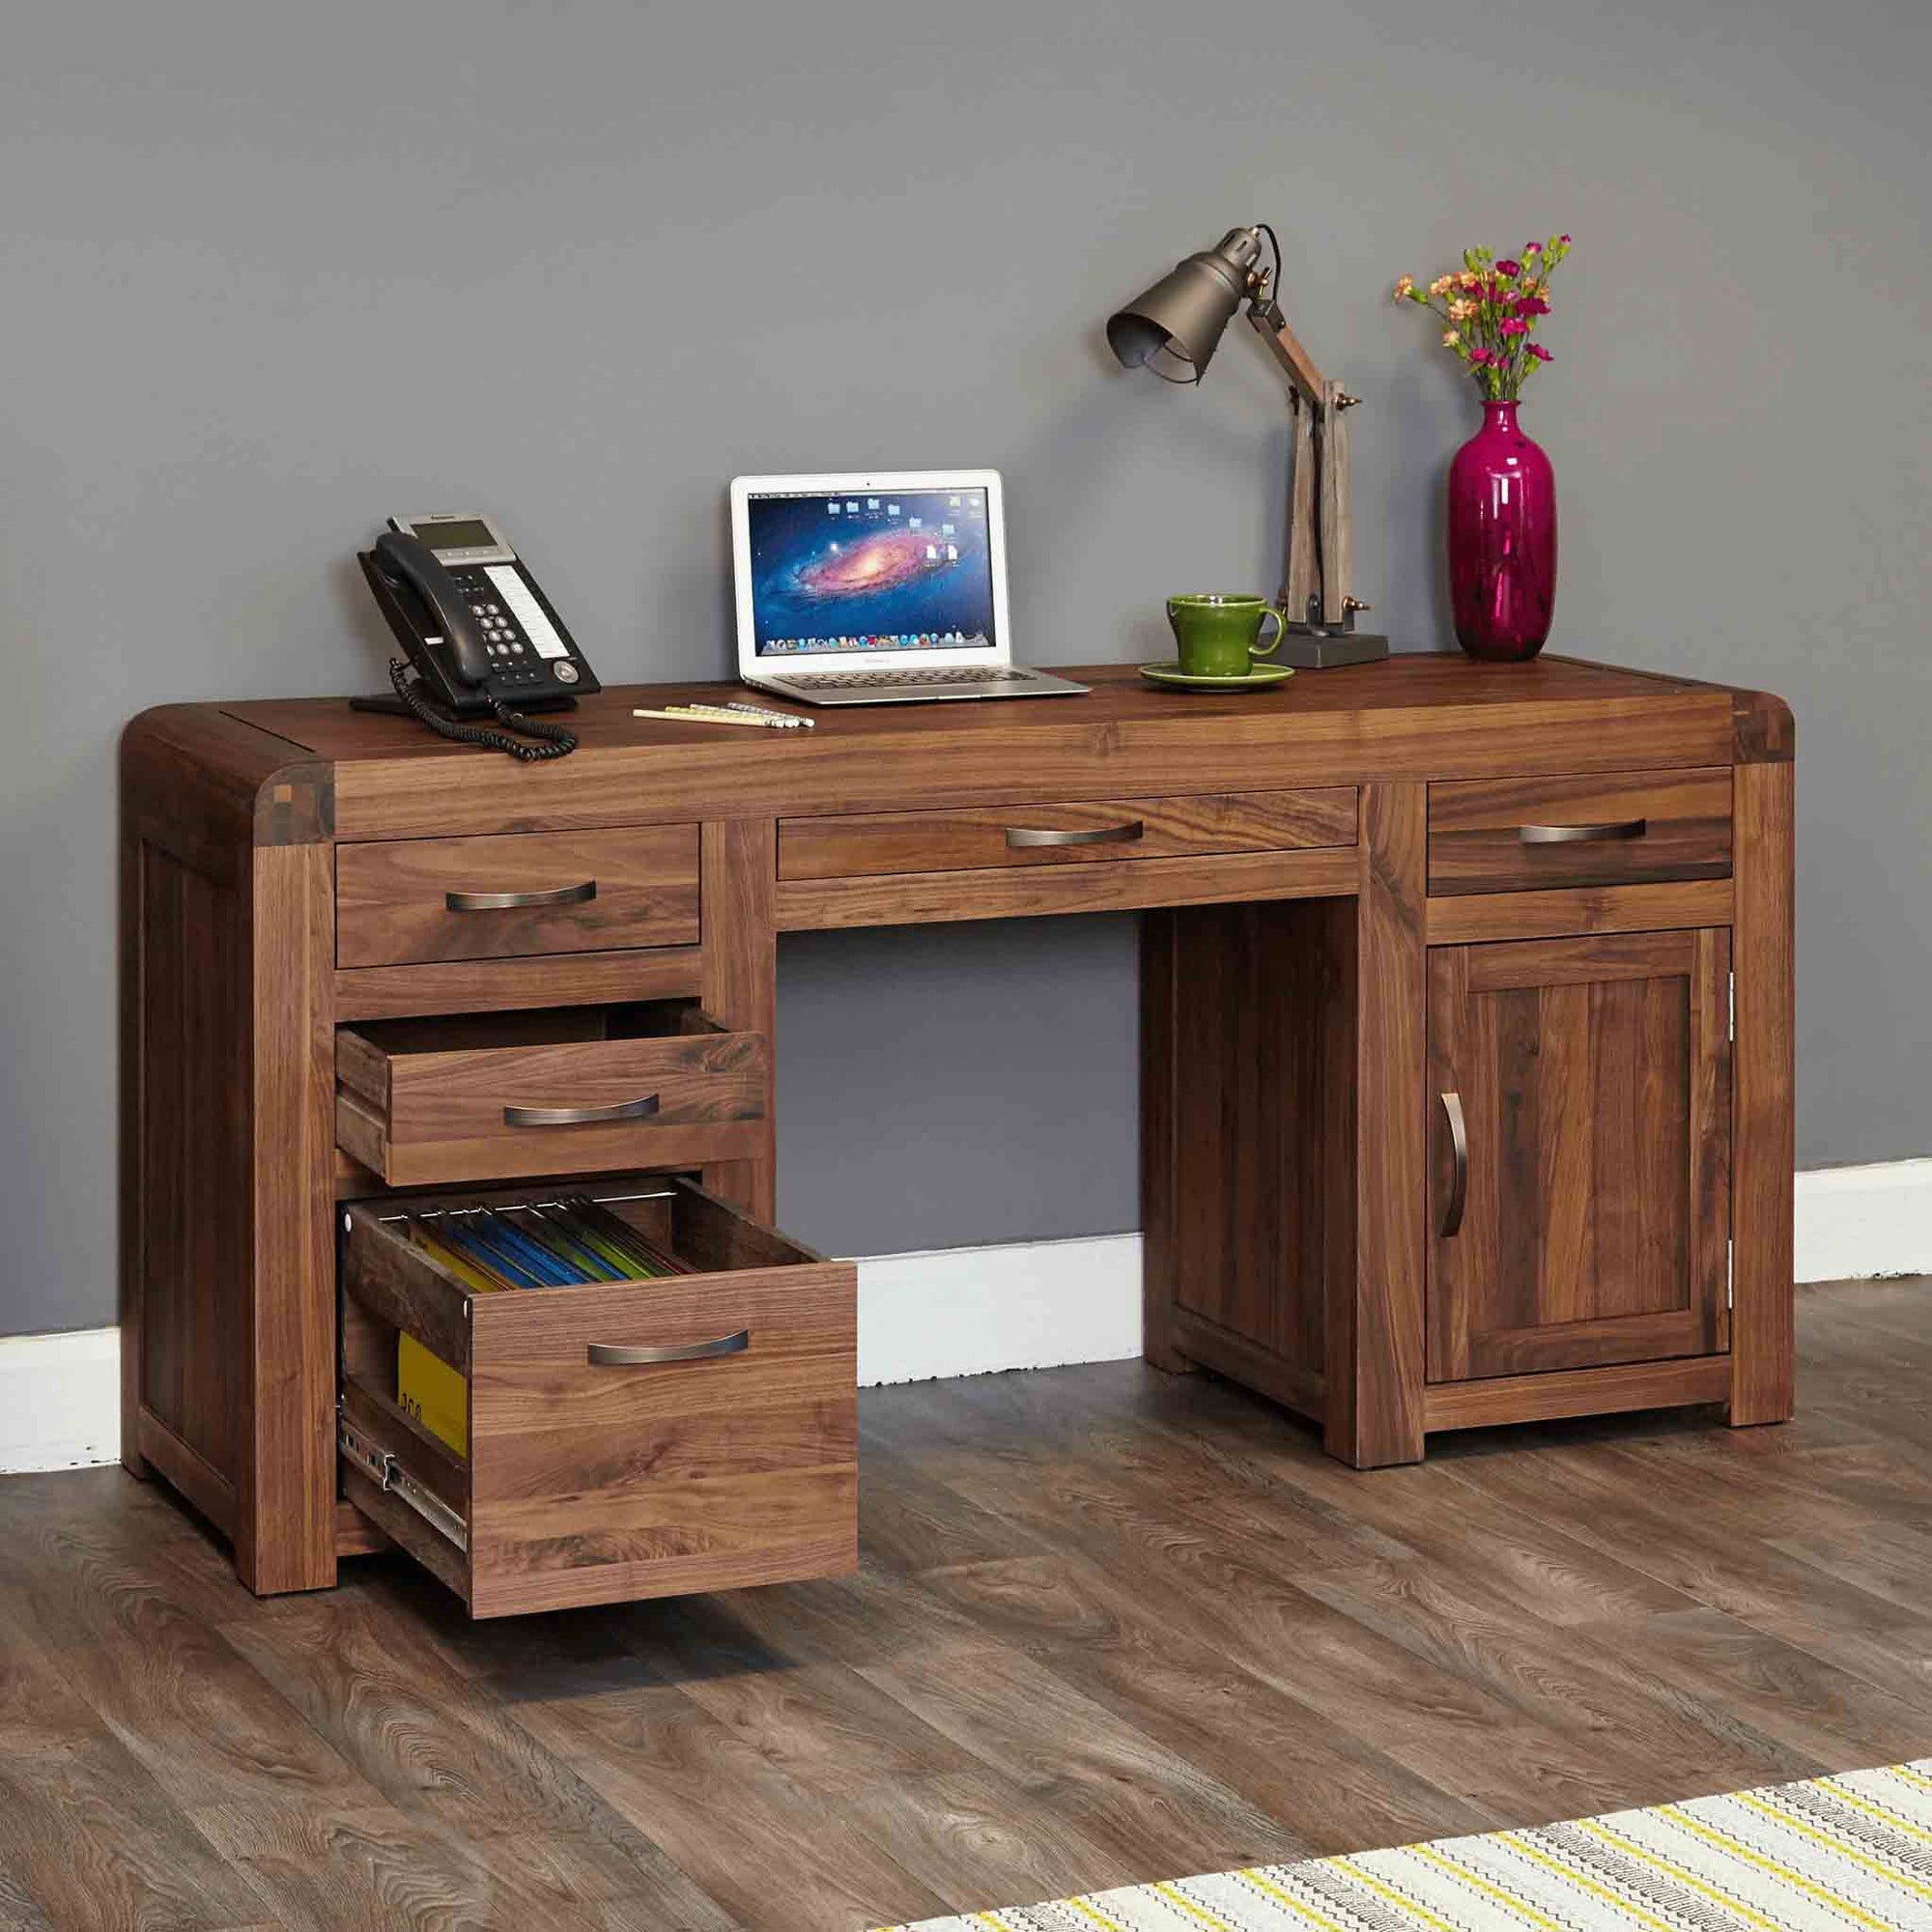 The Salem Walnut Large Wooden Office Desk from Roseland Furniture